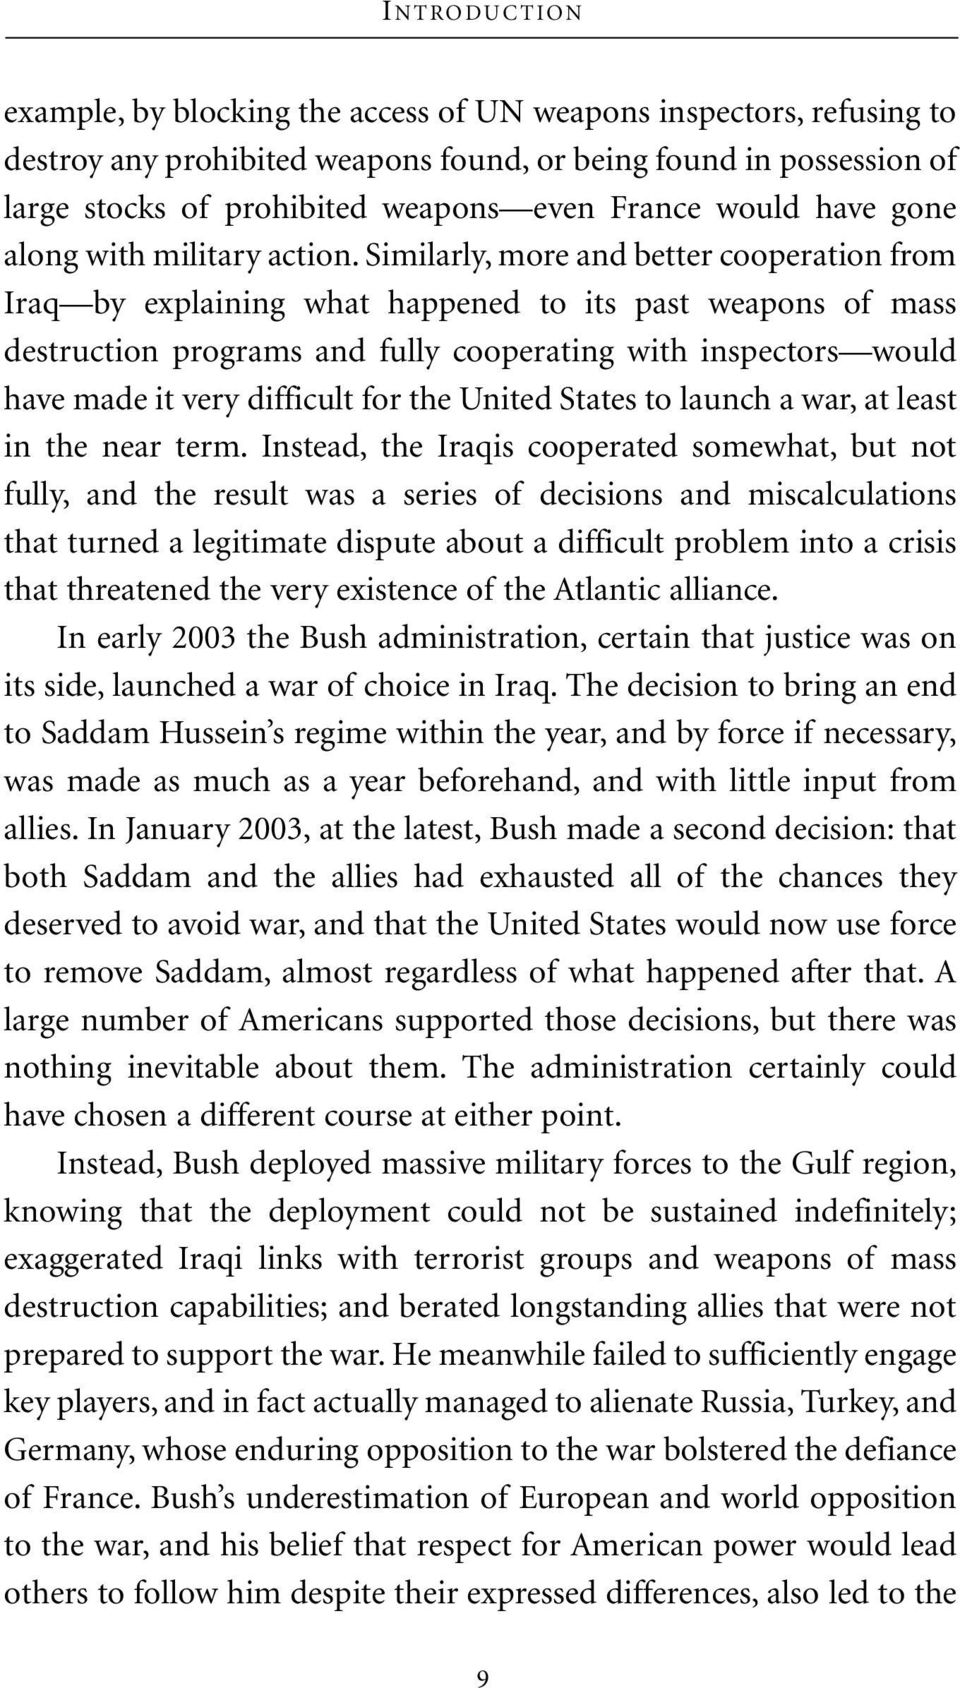 Similarly, more and better cooperation from Iraq by explaining what happened to its past weapons of mass destruction programs and fully cooperating with inspectors would have made it very difficult